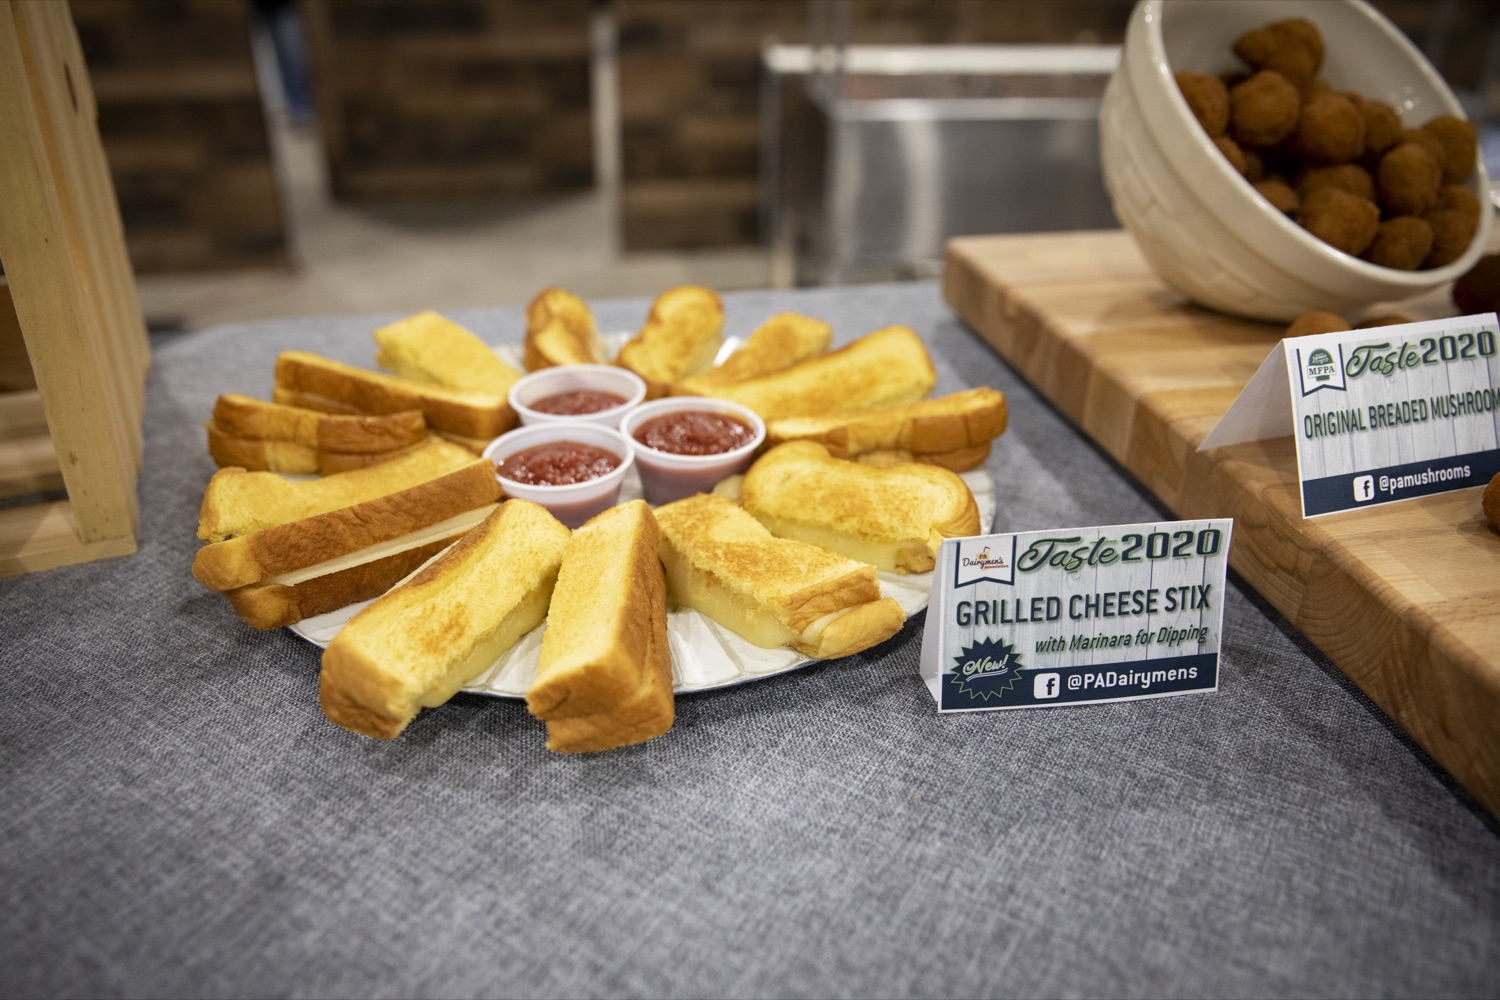 """<a href=""""http://filesource.abacast.com/commonwealthofpa/photo/17658_FARM_SHOW_FIRST_TASTE_CZ_04.JPG"""" target=""""_blank"""">⇣Download Photo<br></a>The PA Dairymens Association introduces grilled cheese stix with marinara dipping sauce at the Pennsylvania Farm Show Food Court in Harrisburg on January 2, 2020."""